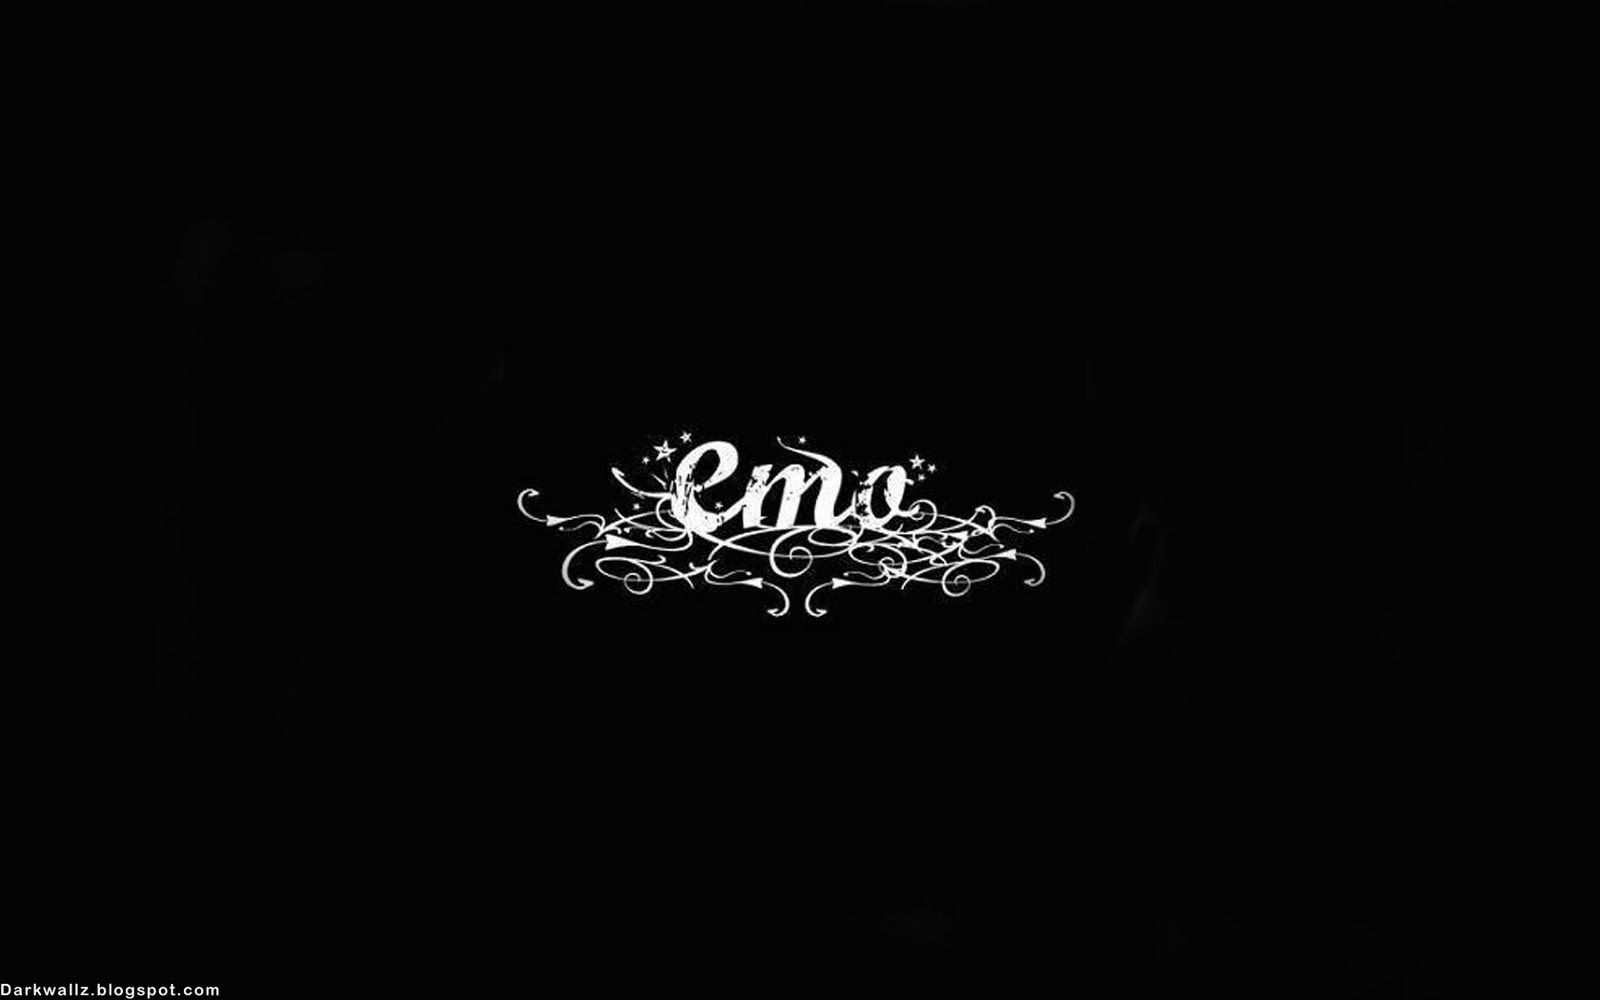 Emo Wallpapers Android Apps on Google Play